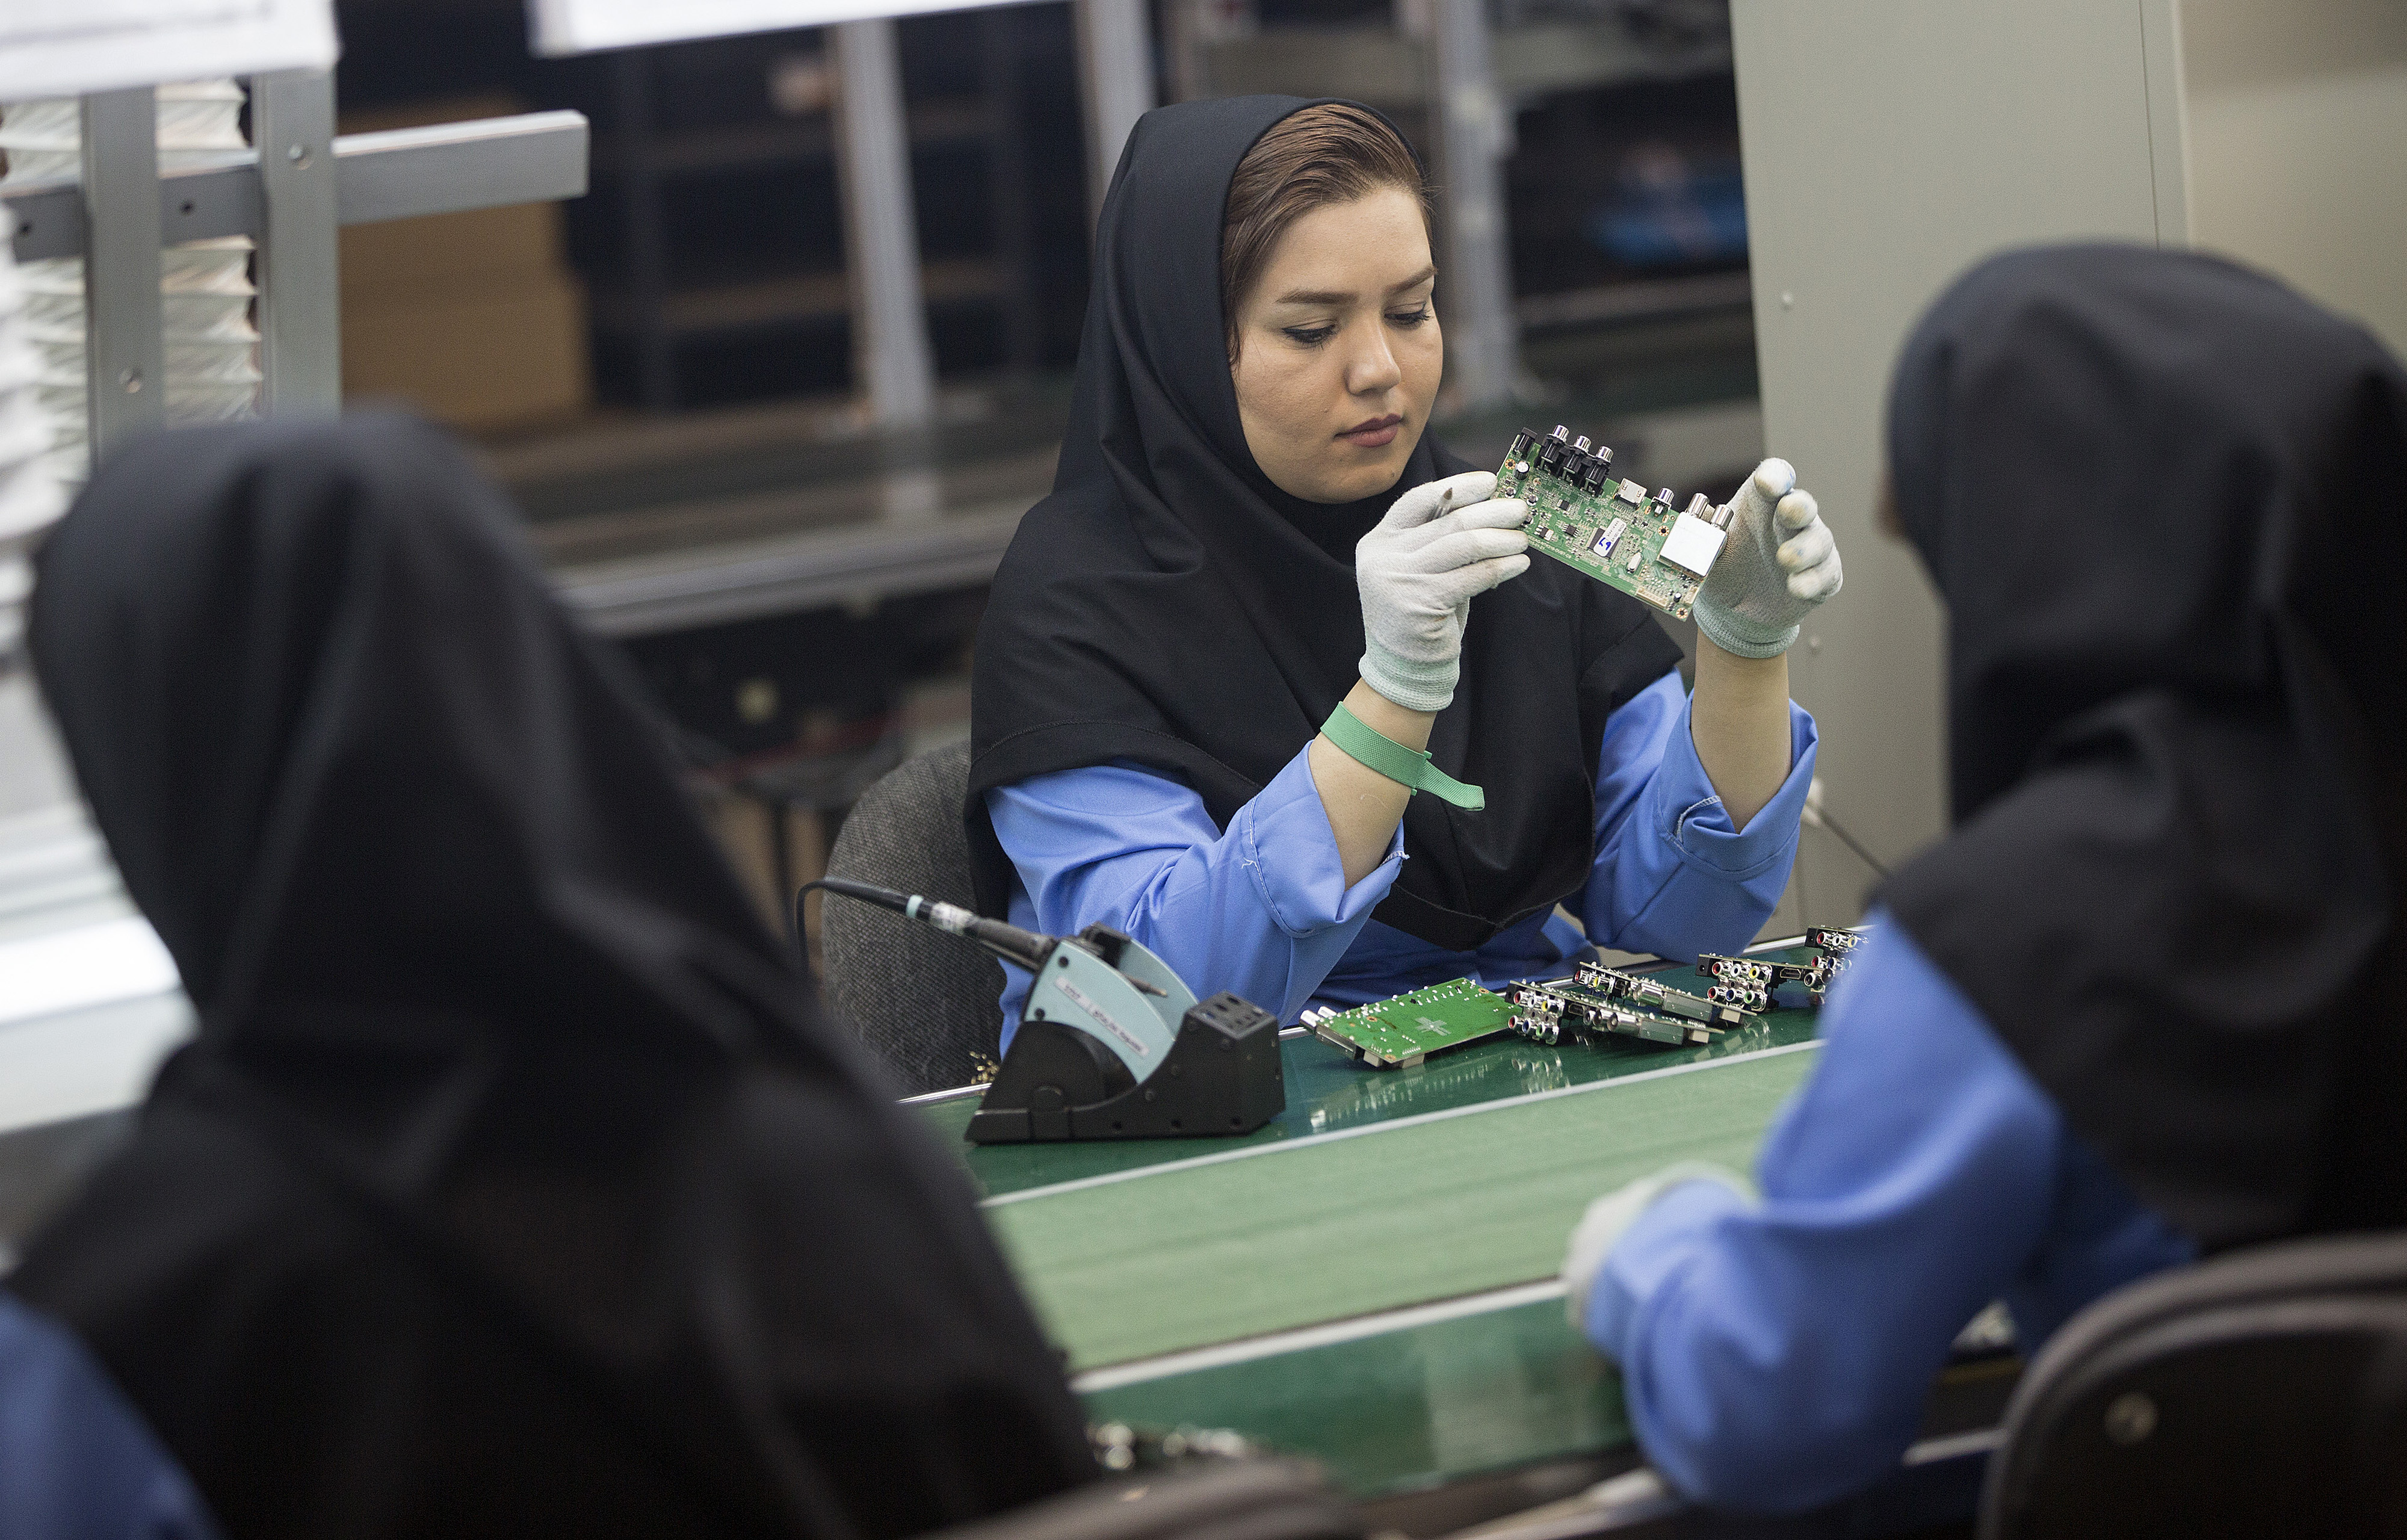 Female employees work on the assembly of electronic circuit boards at the Maadiran Group electronics distribution and manufacturing plant in Hashtgerd, Iran, on Tuesday, Sept. 1, 2015.